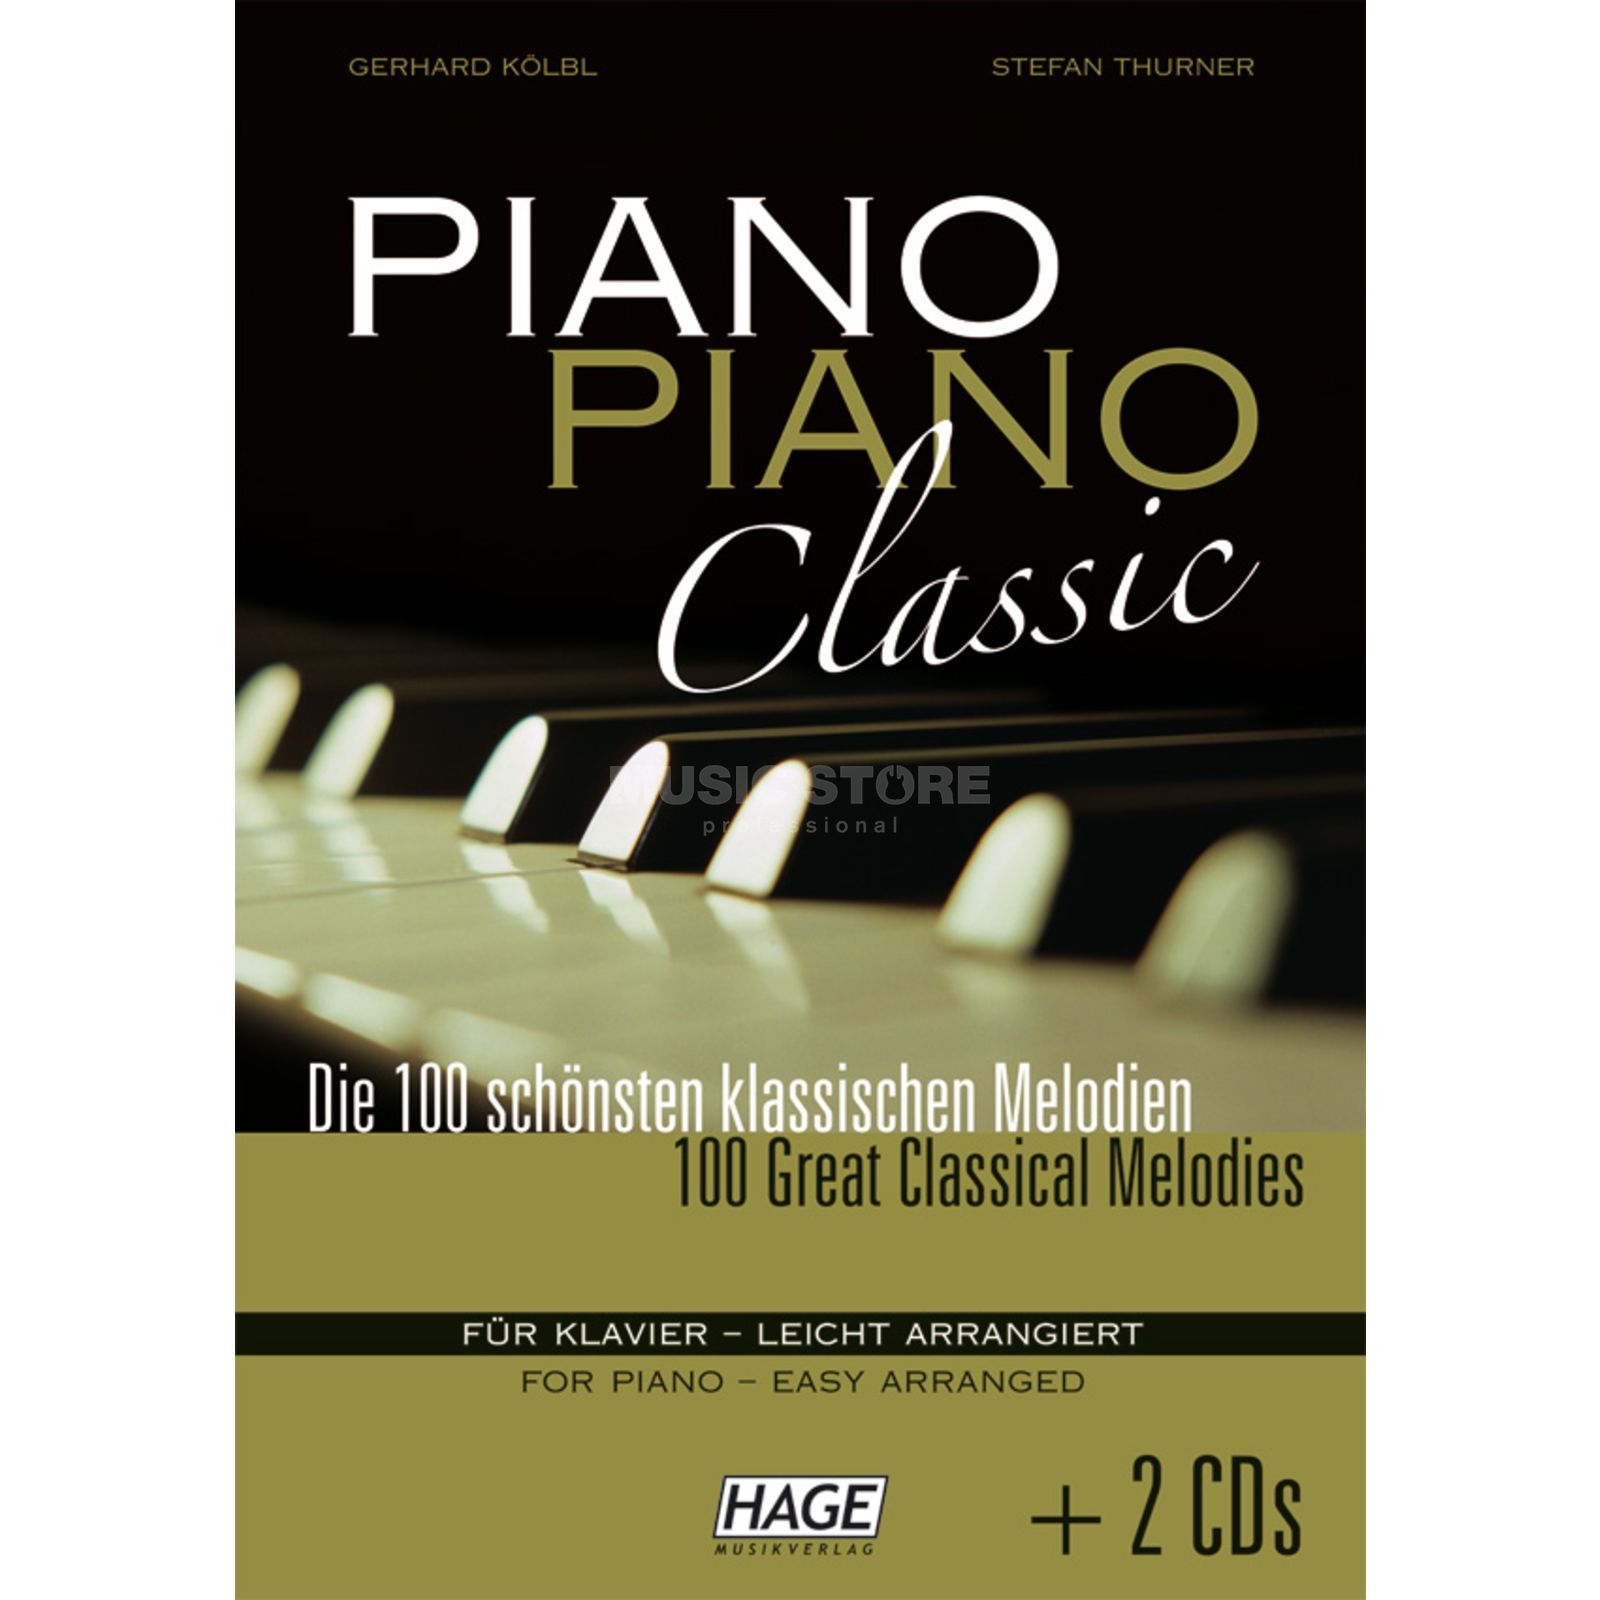 Hage Musikverlag Piano Piano classic 100 Melodien PVG Produktbillede